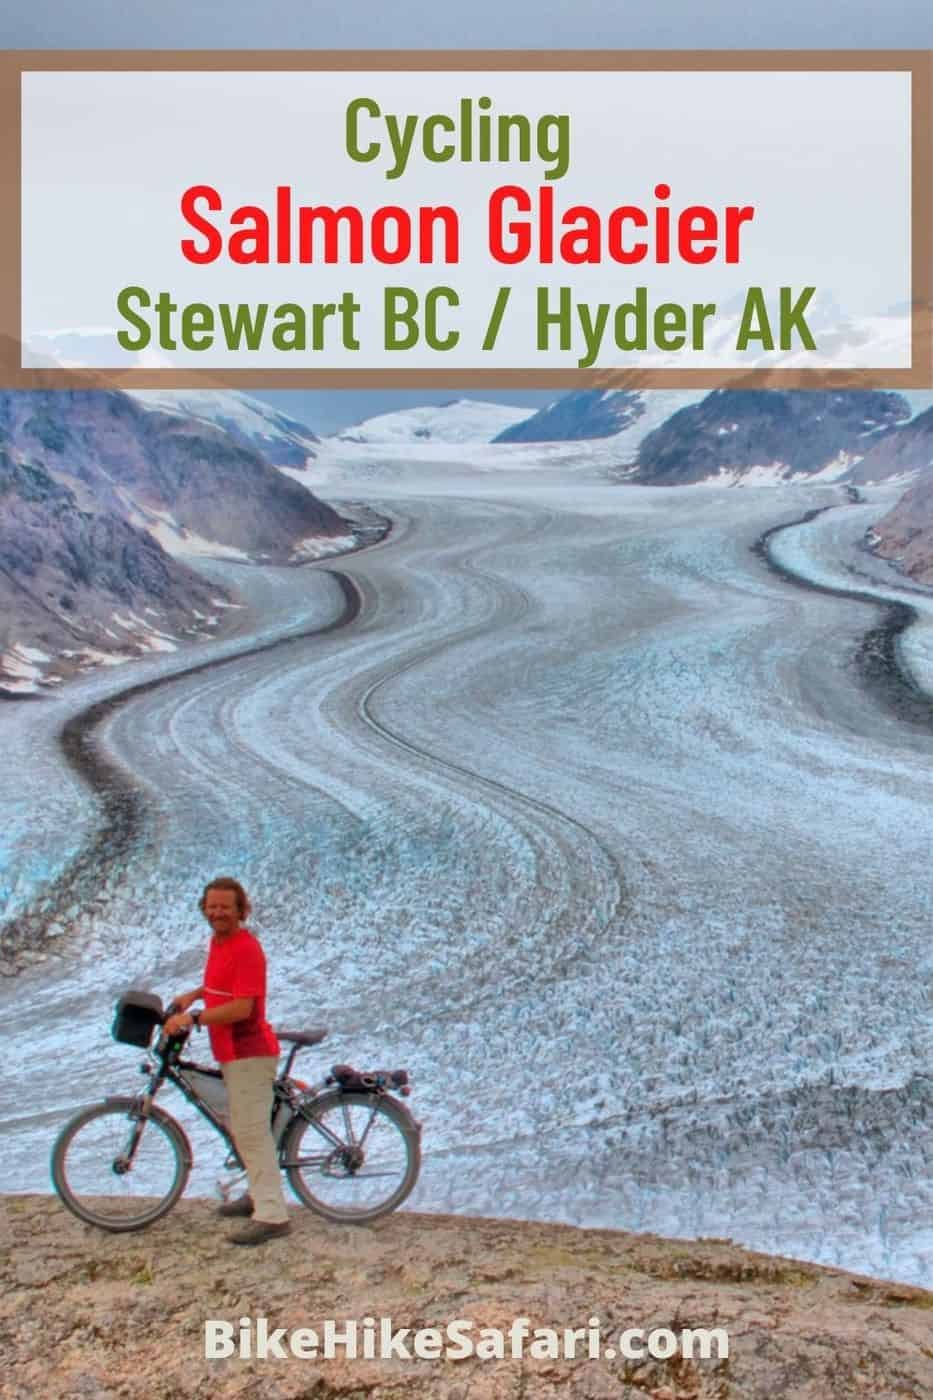 Cycling Salmon Glacier